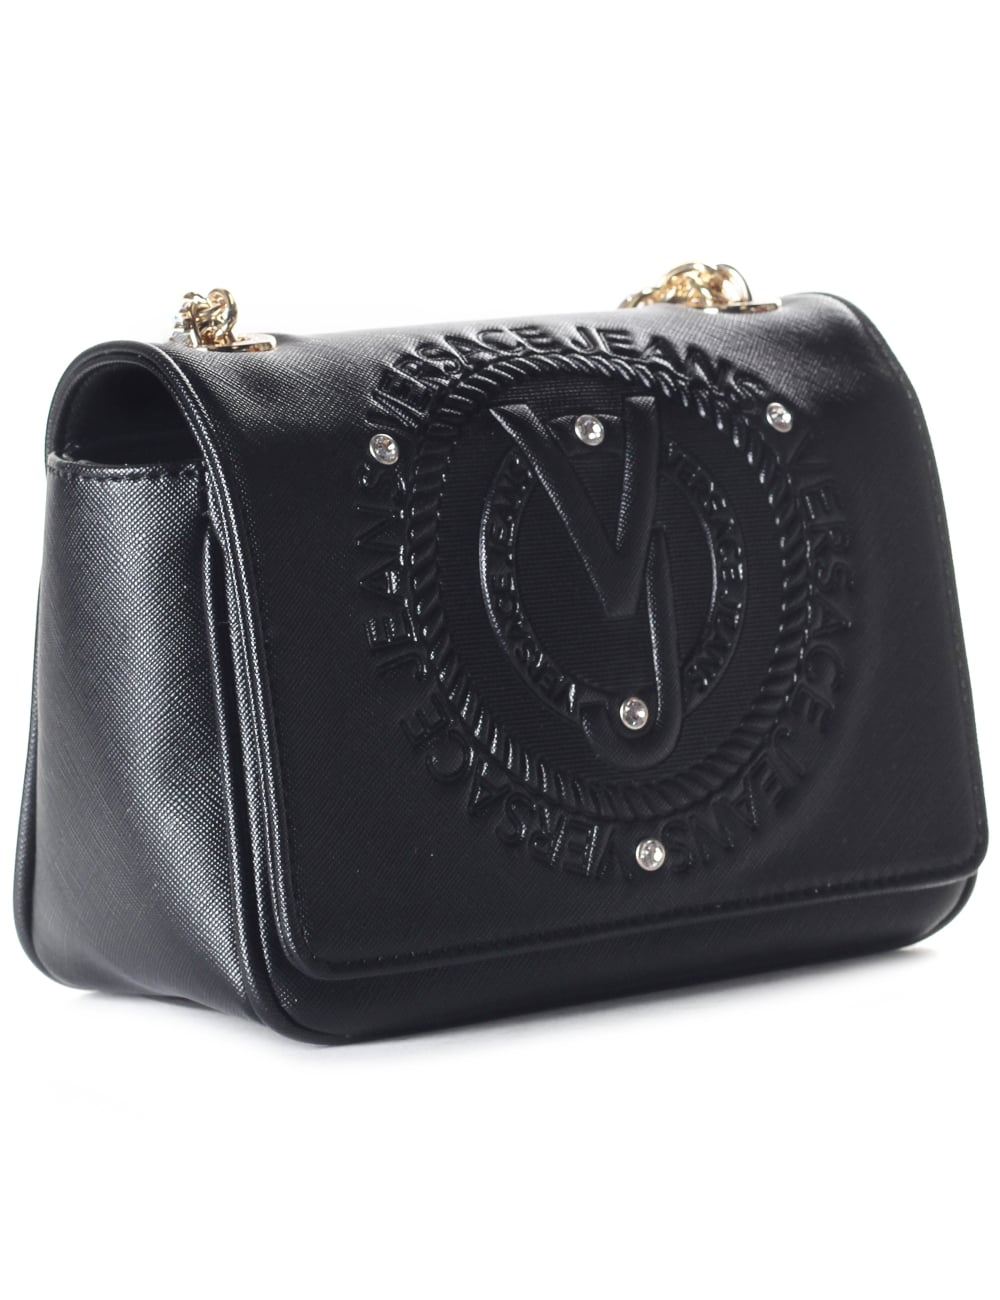 0ff414993b Versace Jeans Embossed Logo Women s Chain Strap Bag